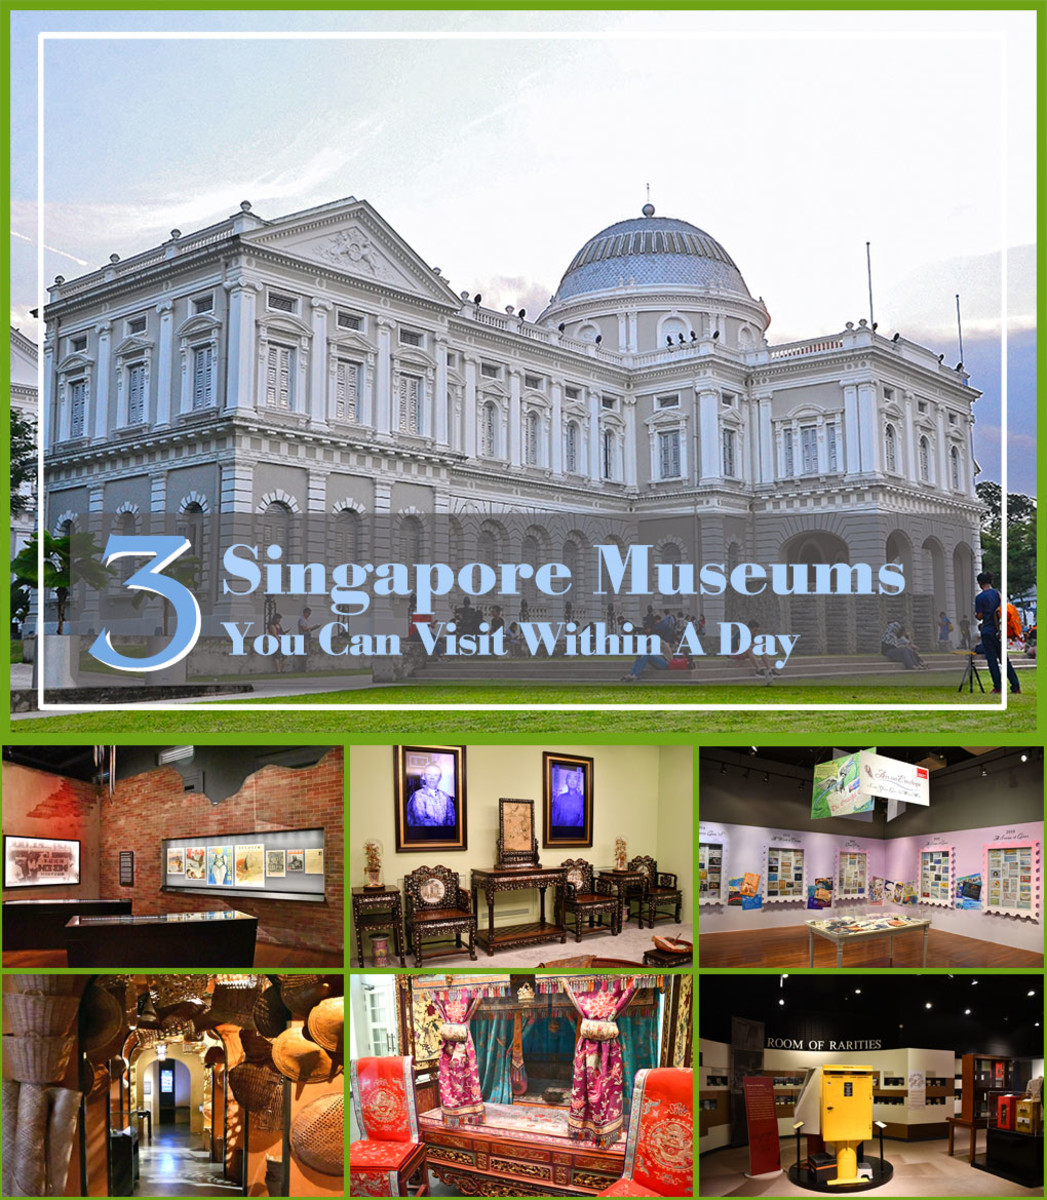 3 Singapore Museums You Can Visit in a Day